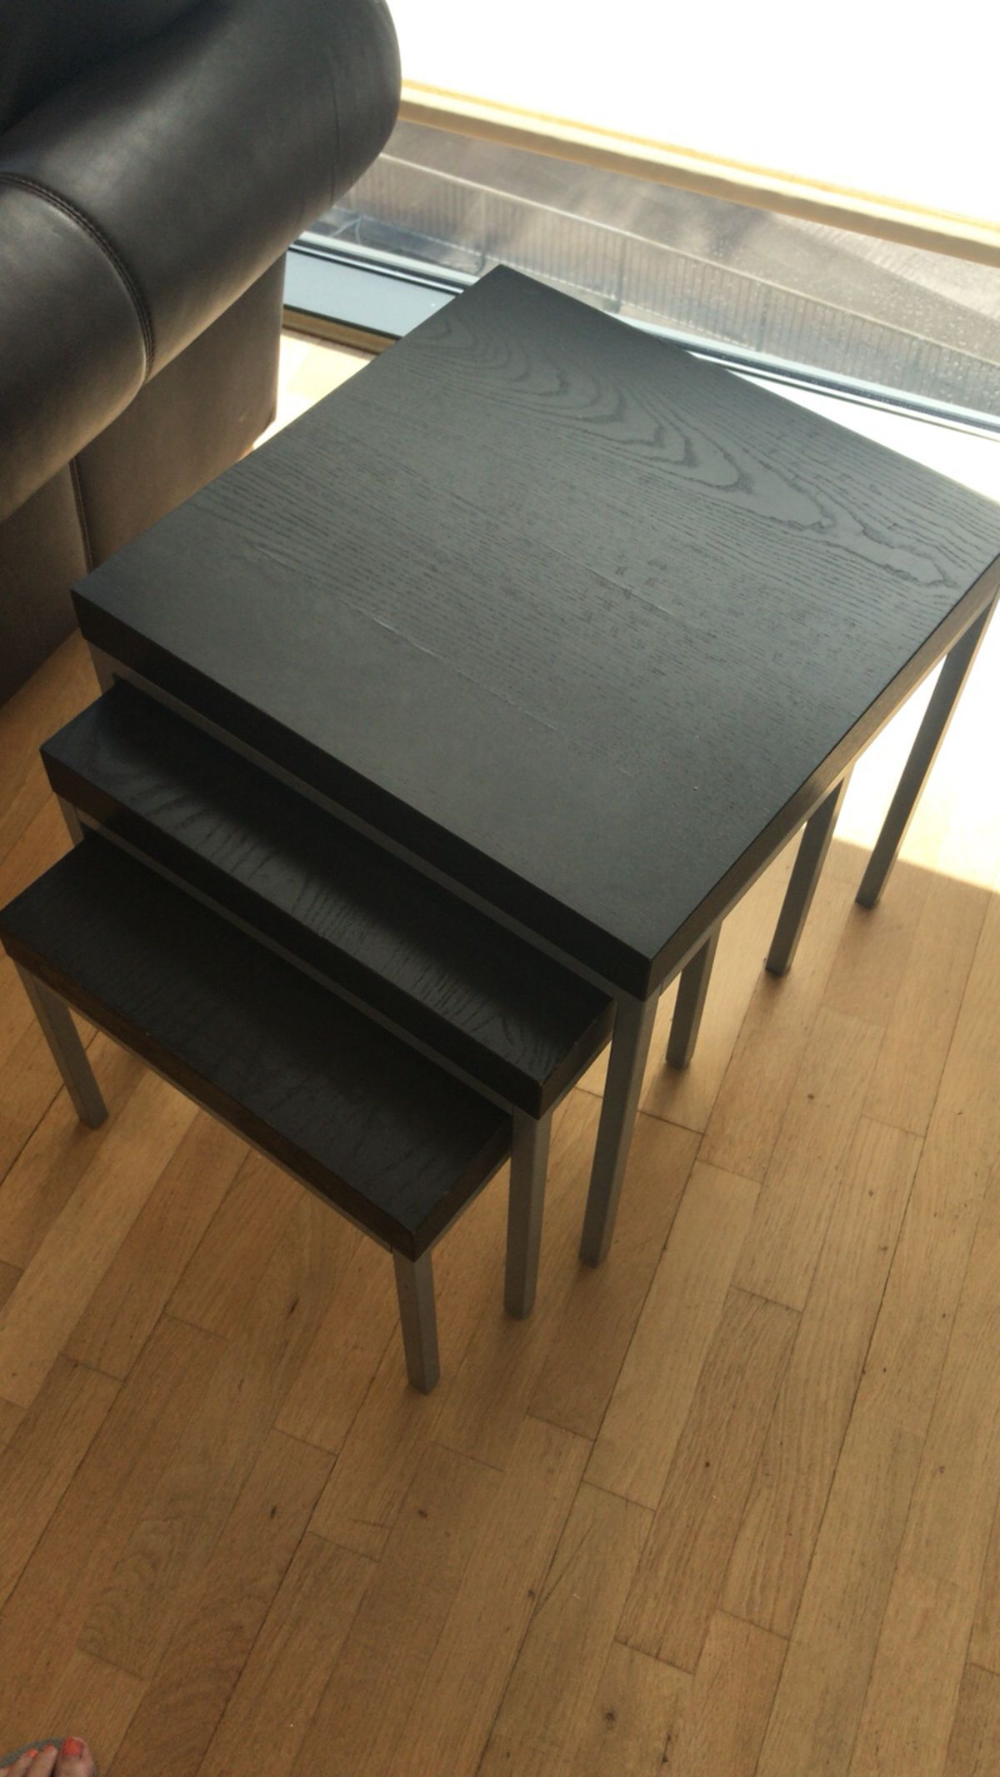 Ikea Side Nest Of Tables Coffee Table In L14 Liverpool Fur 14 Ikea Side Table Ikea Lack Side Table Ikea Lack Coffee Table [ 1777 x 1000 Pixel ]